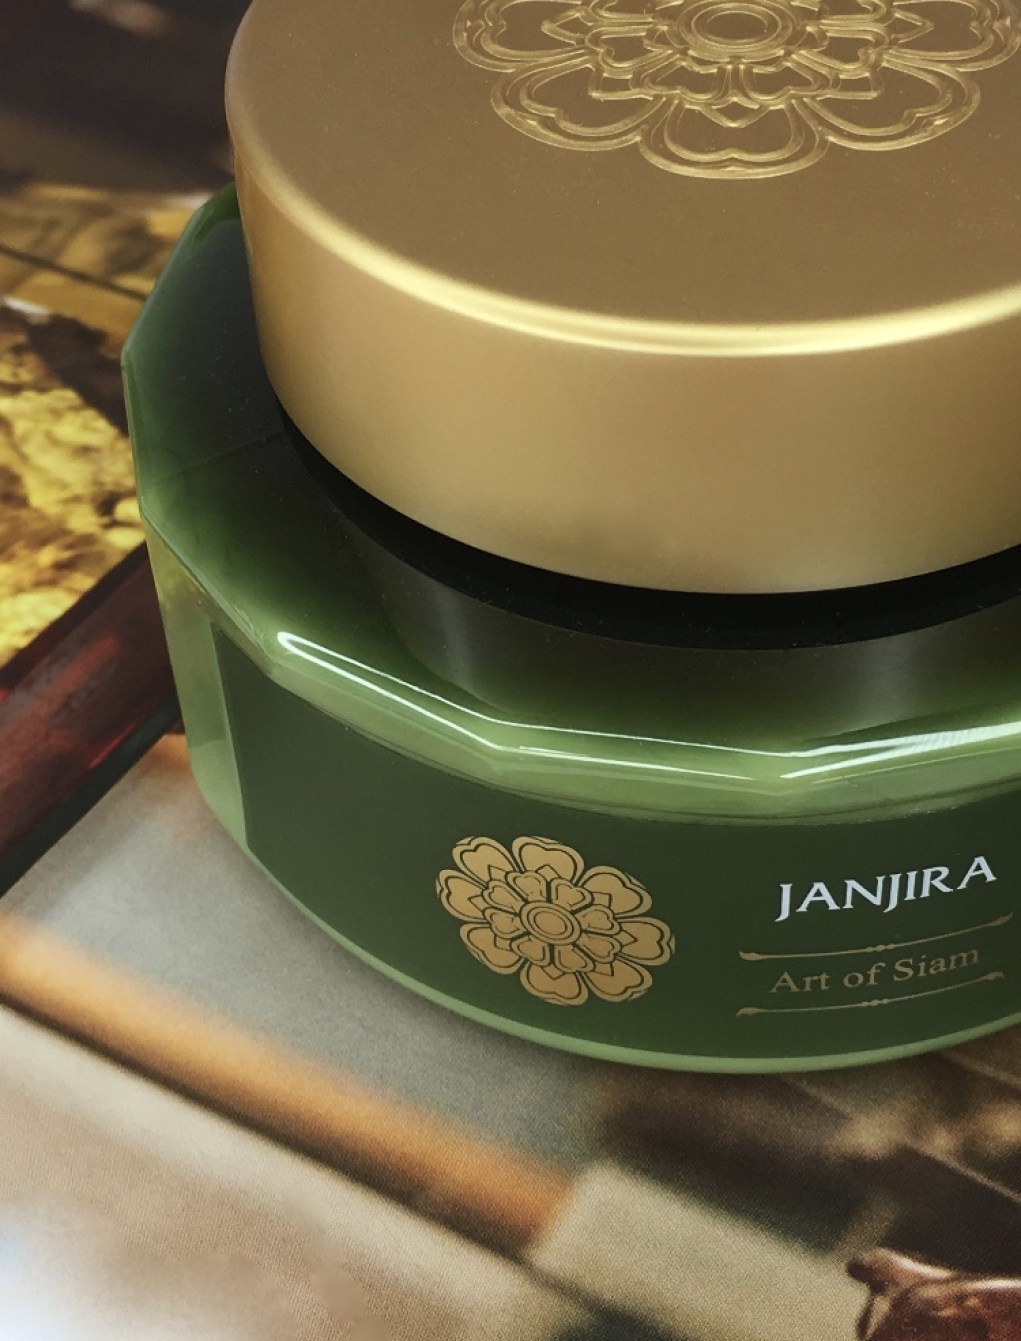 Janjira body butter